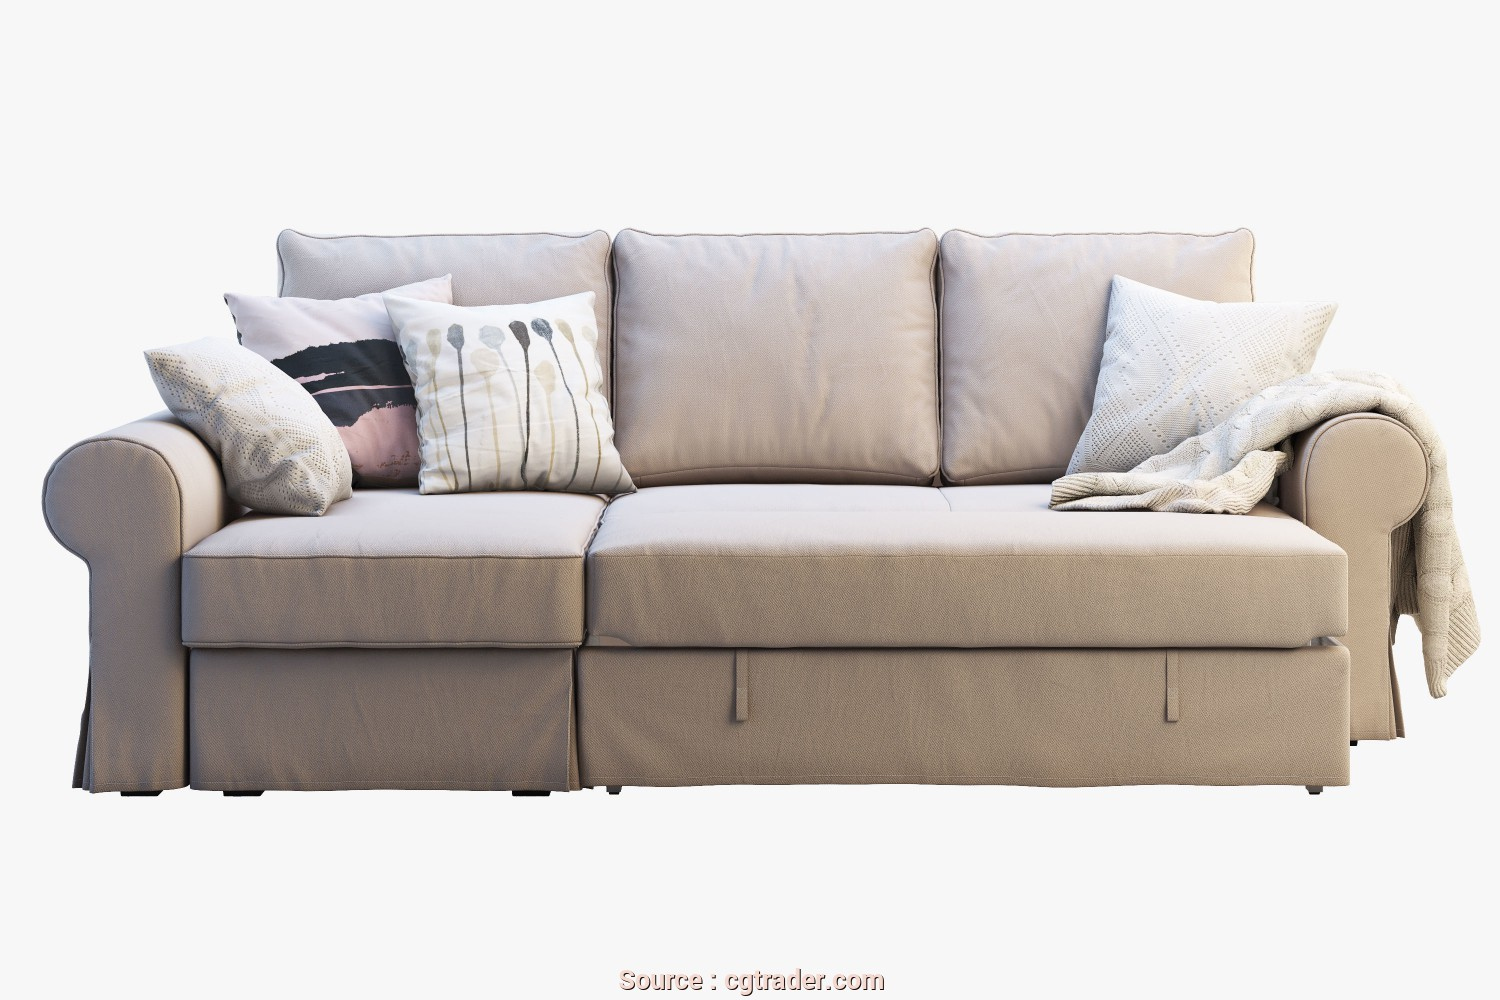 Backabro Ikea, Deale ... Ikea Backabro 2 Sofas 3D Model, Obj, 3Ds, 6